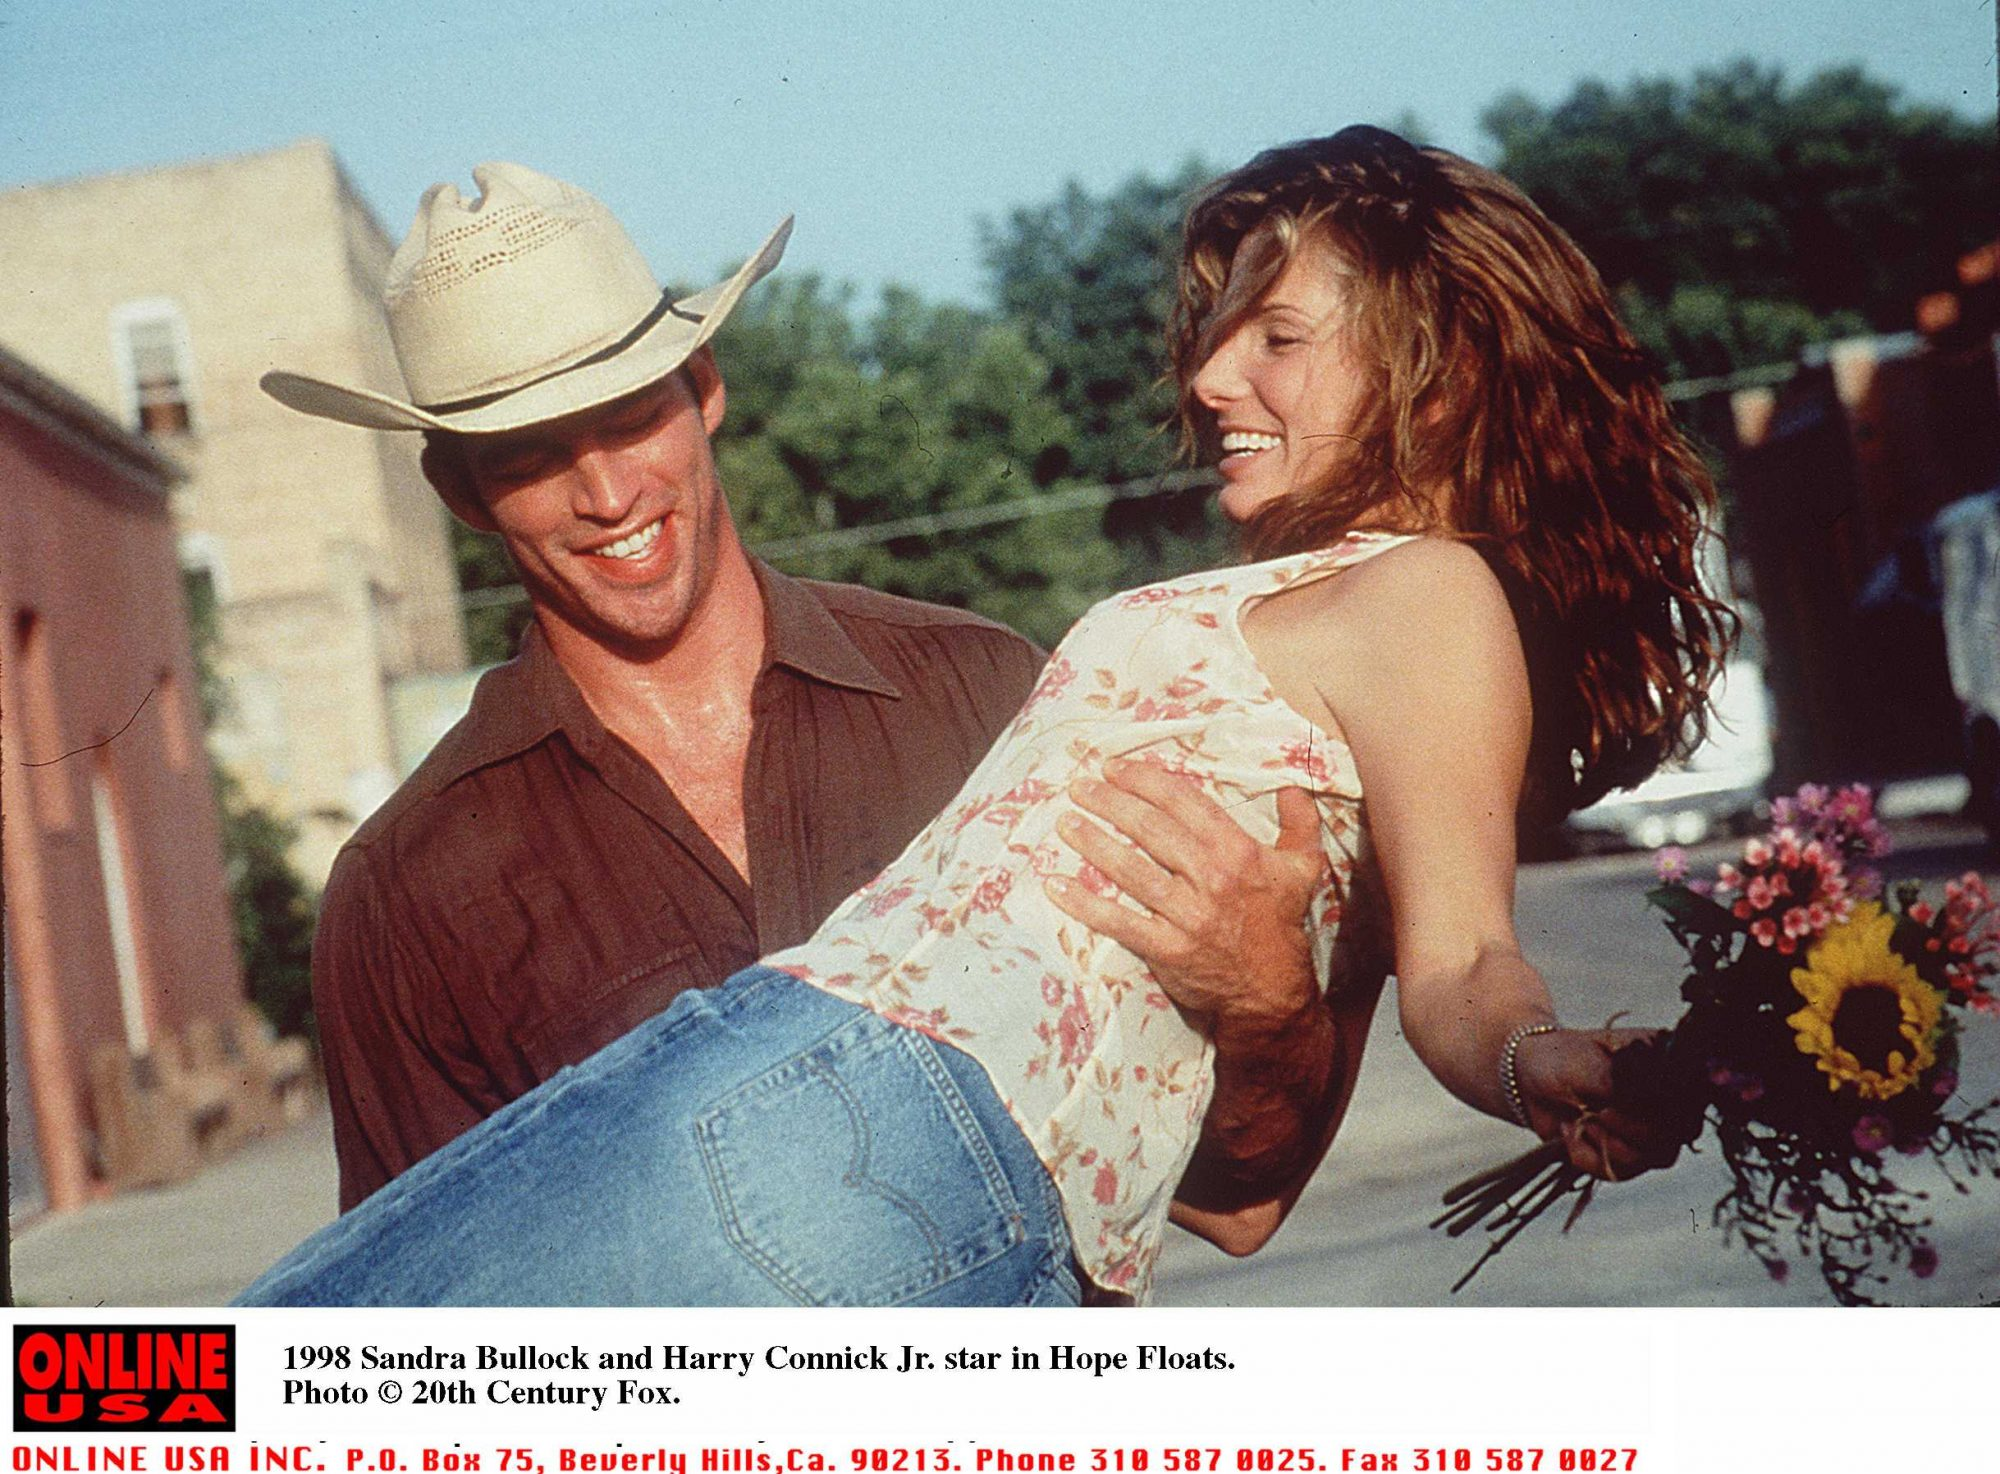 Sandra Bullock and Harry Connick, Jr in Hope Floats